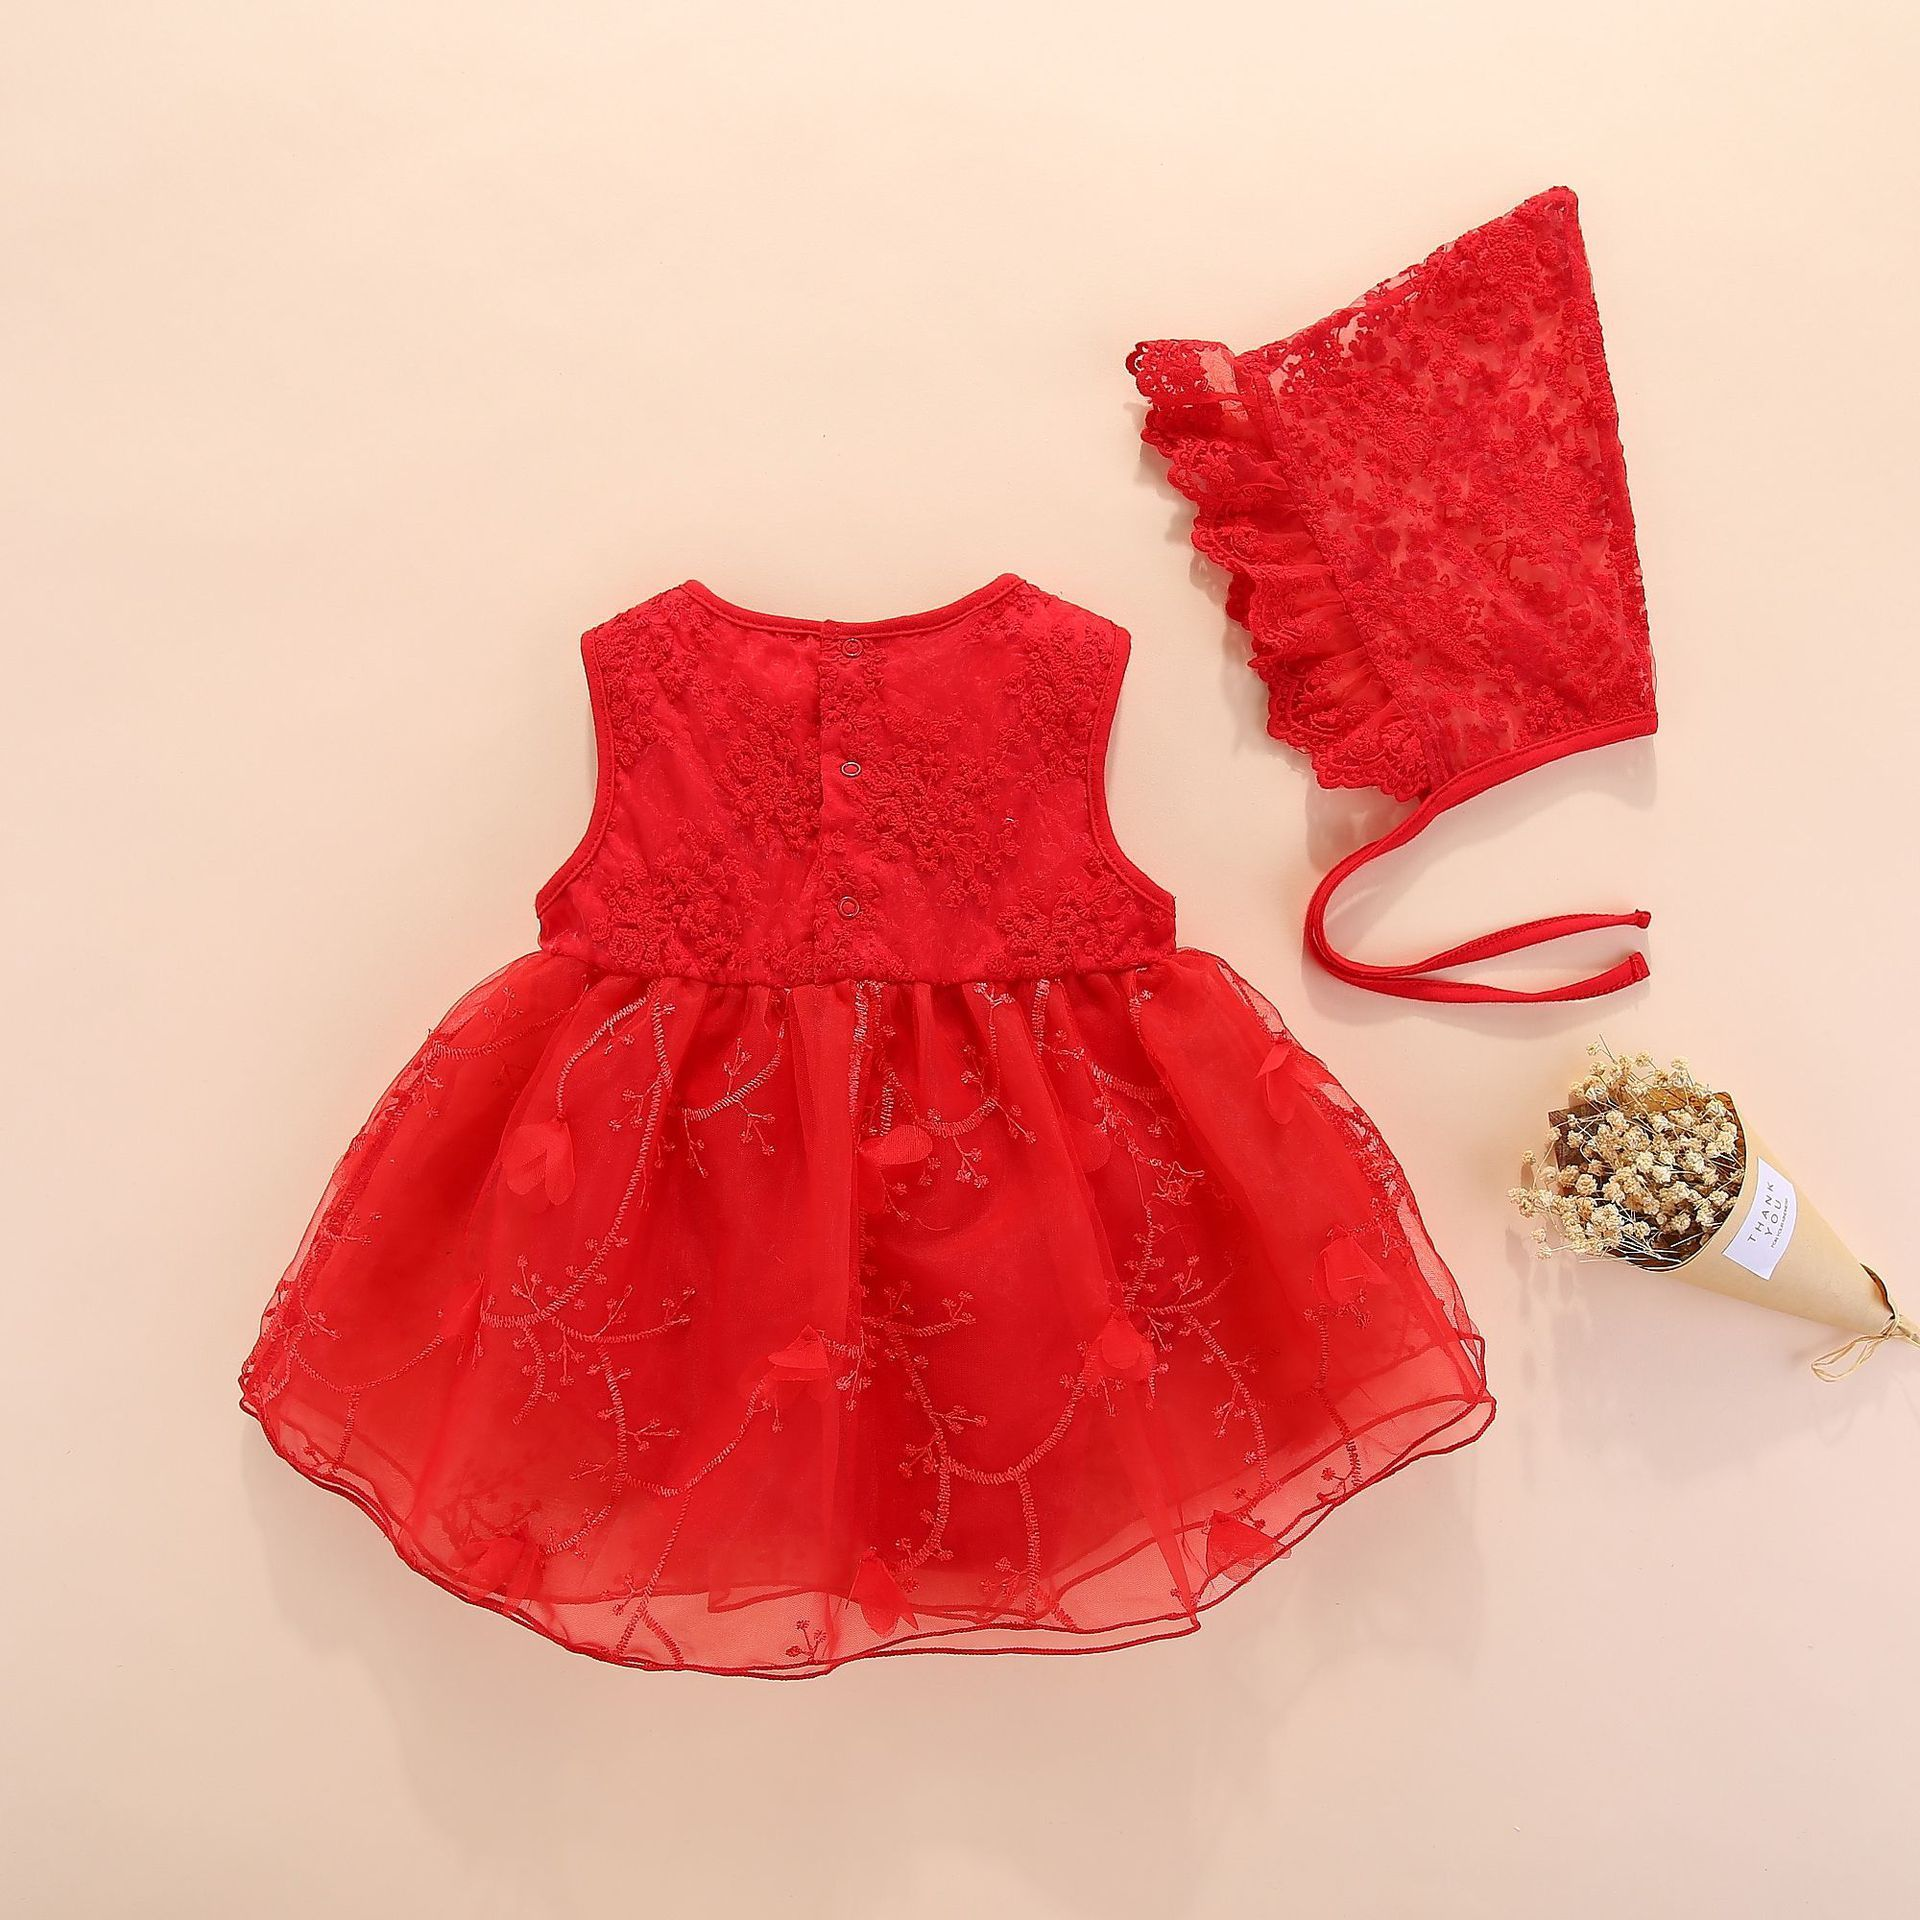 Newborn Baby Girl Dresses Clothes Summer With Flower 0 3 6 Month Baby Girl Dress For Party And Wedding Princess Style Clothes J190506